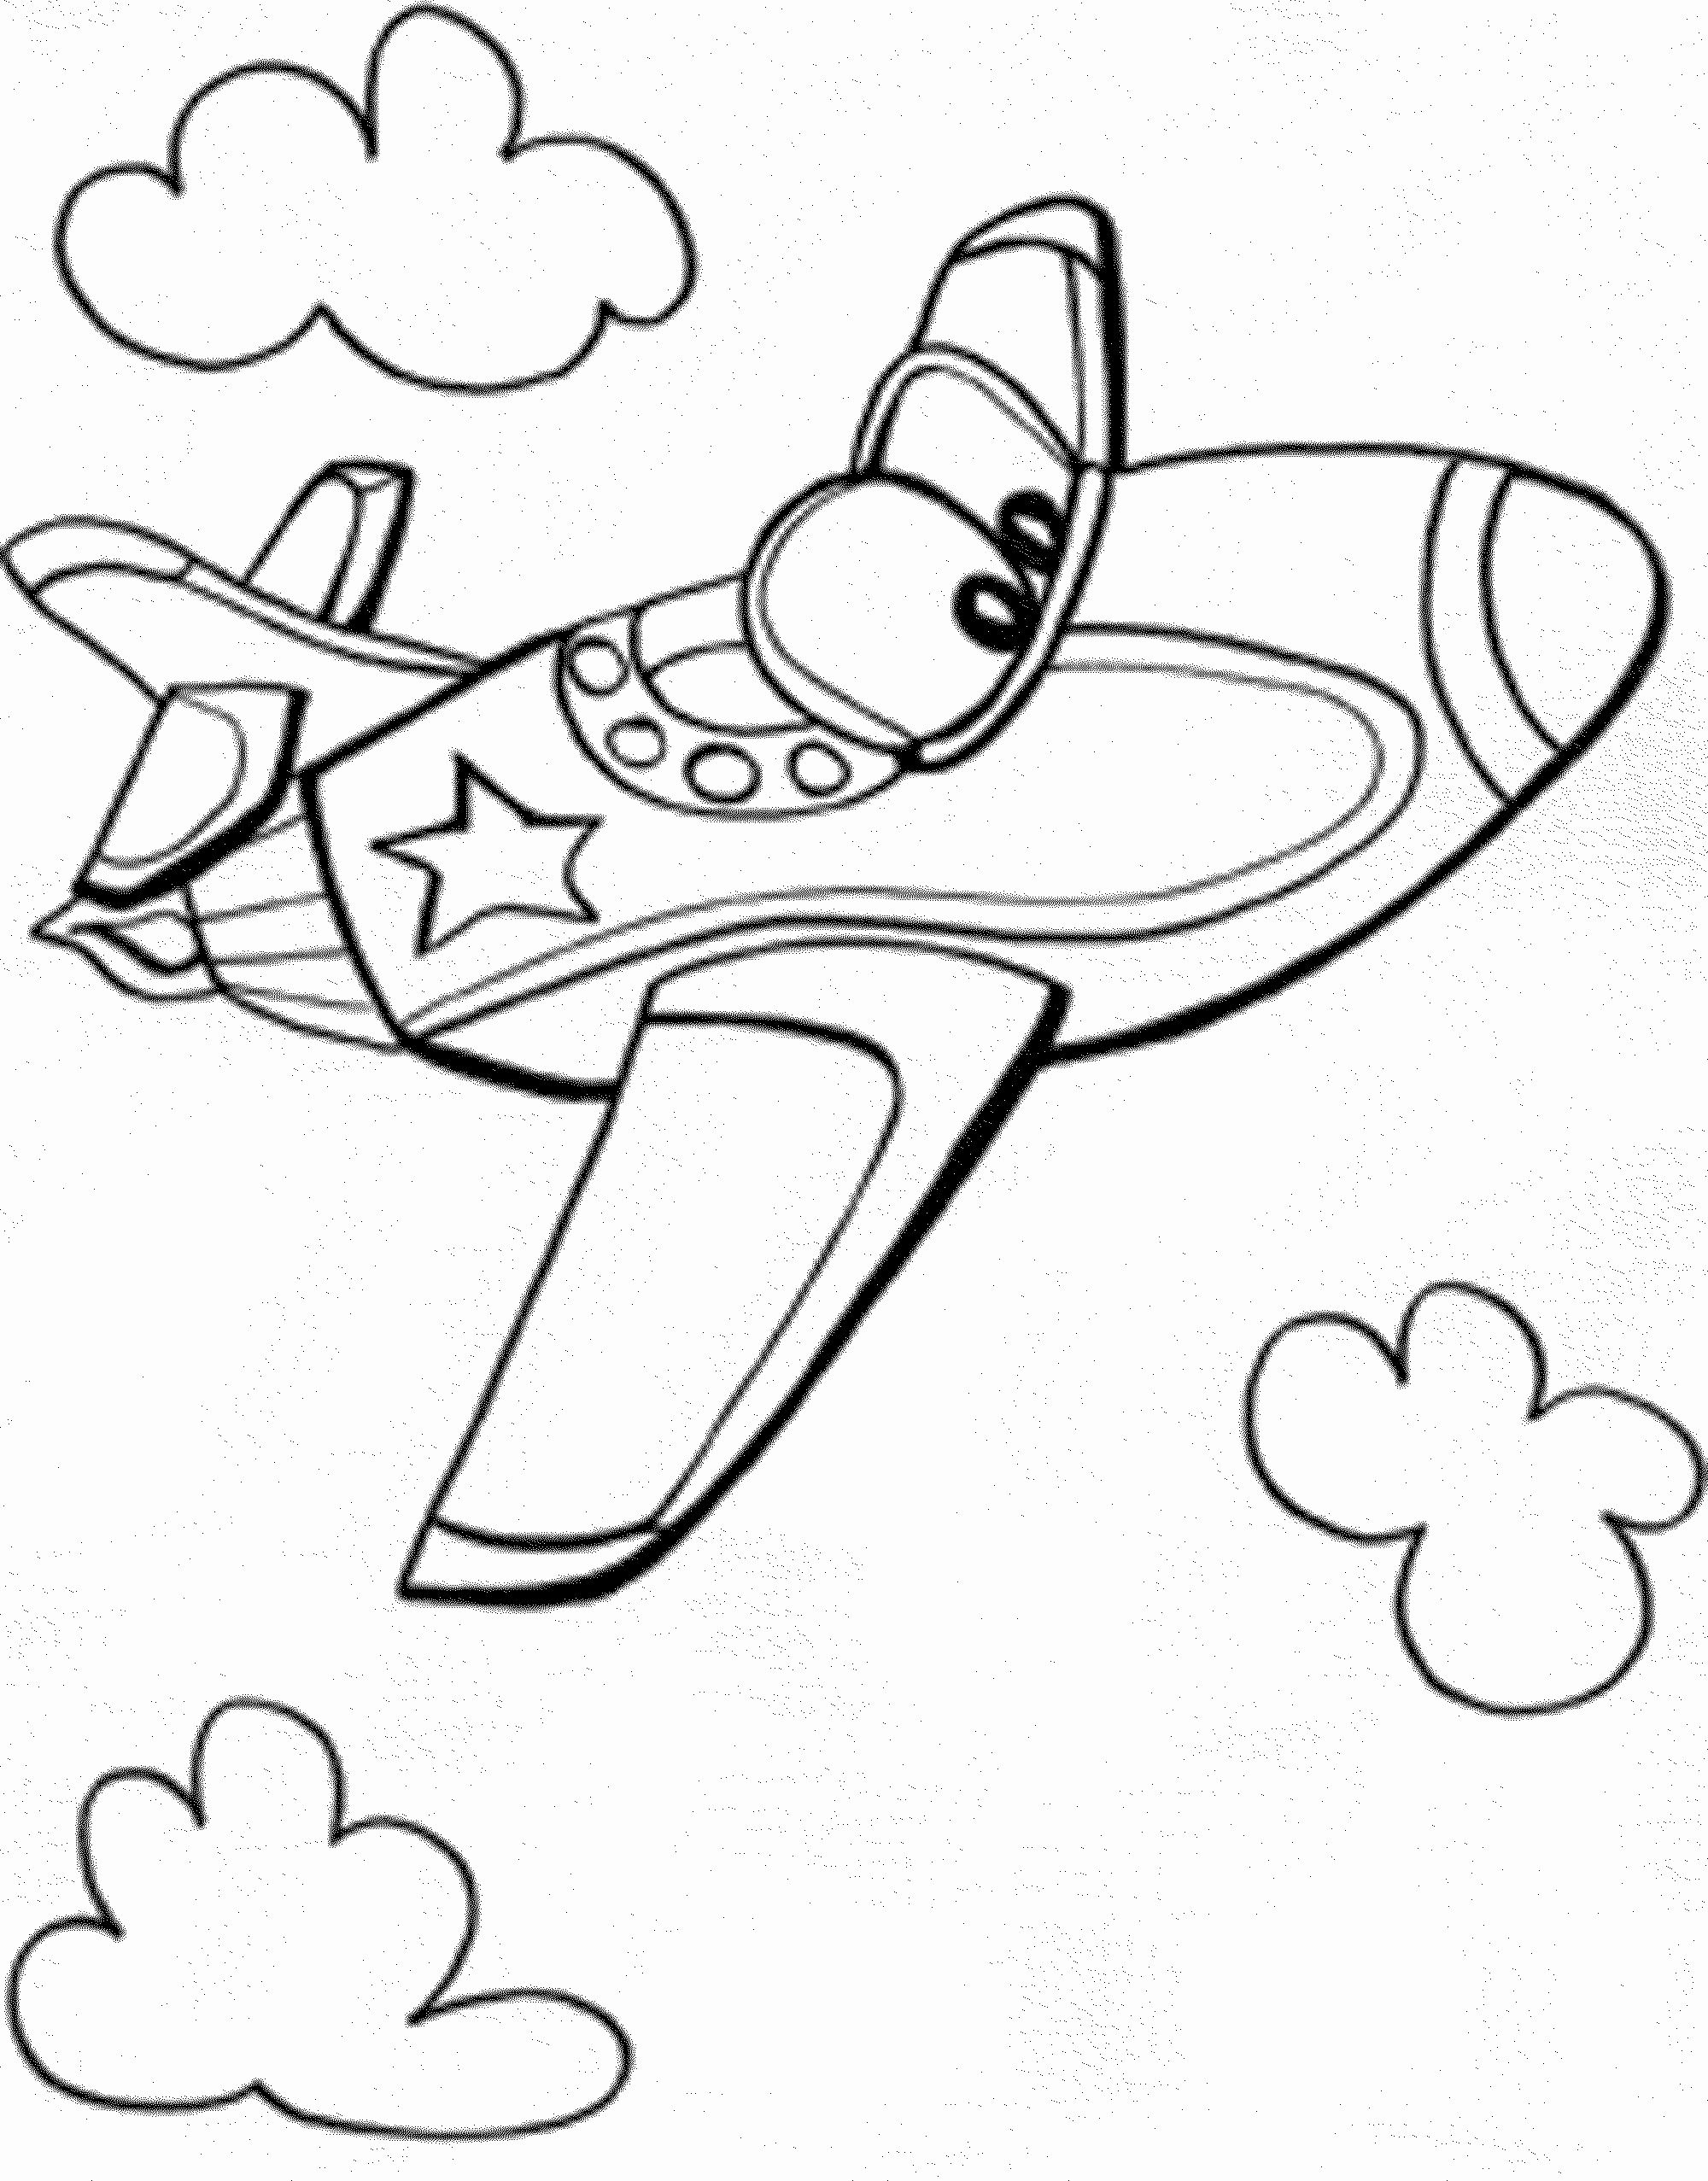 Lego Airplanes Coloring Pages For Kids Lego Airplanes